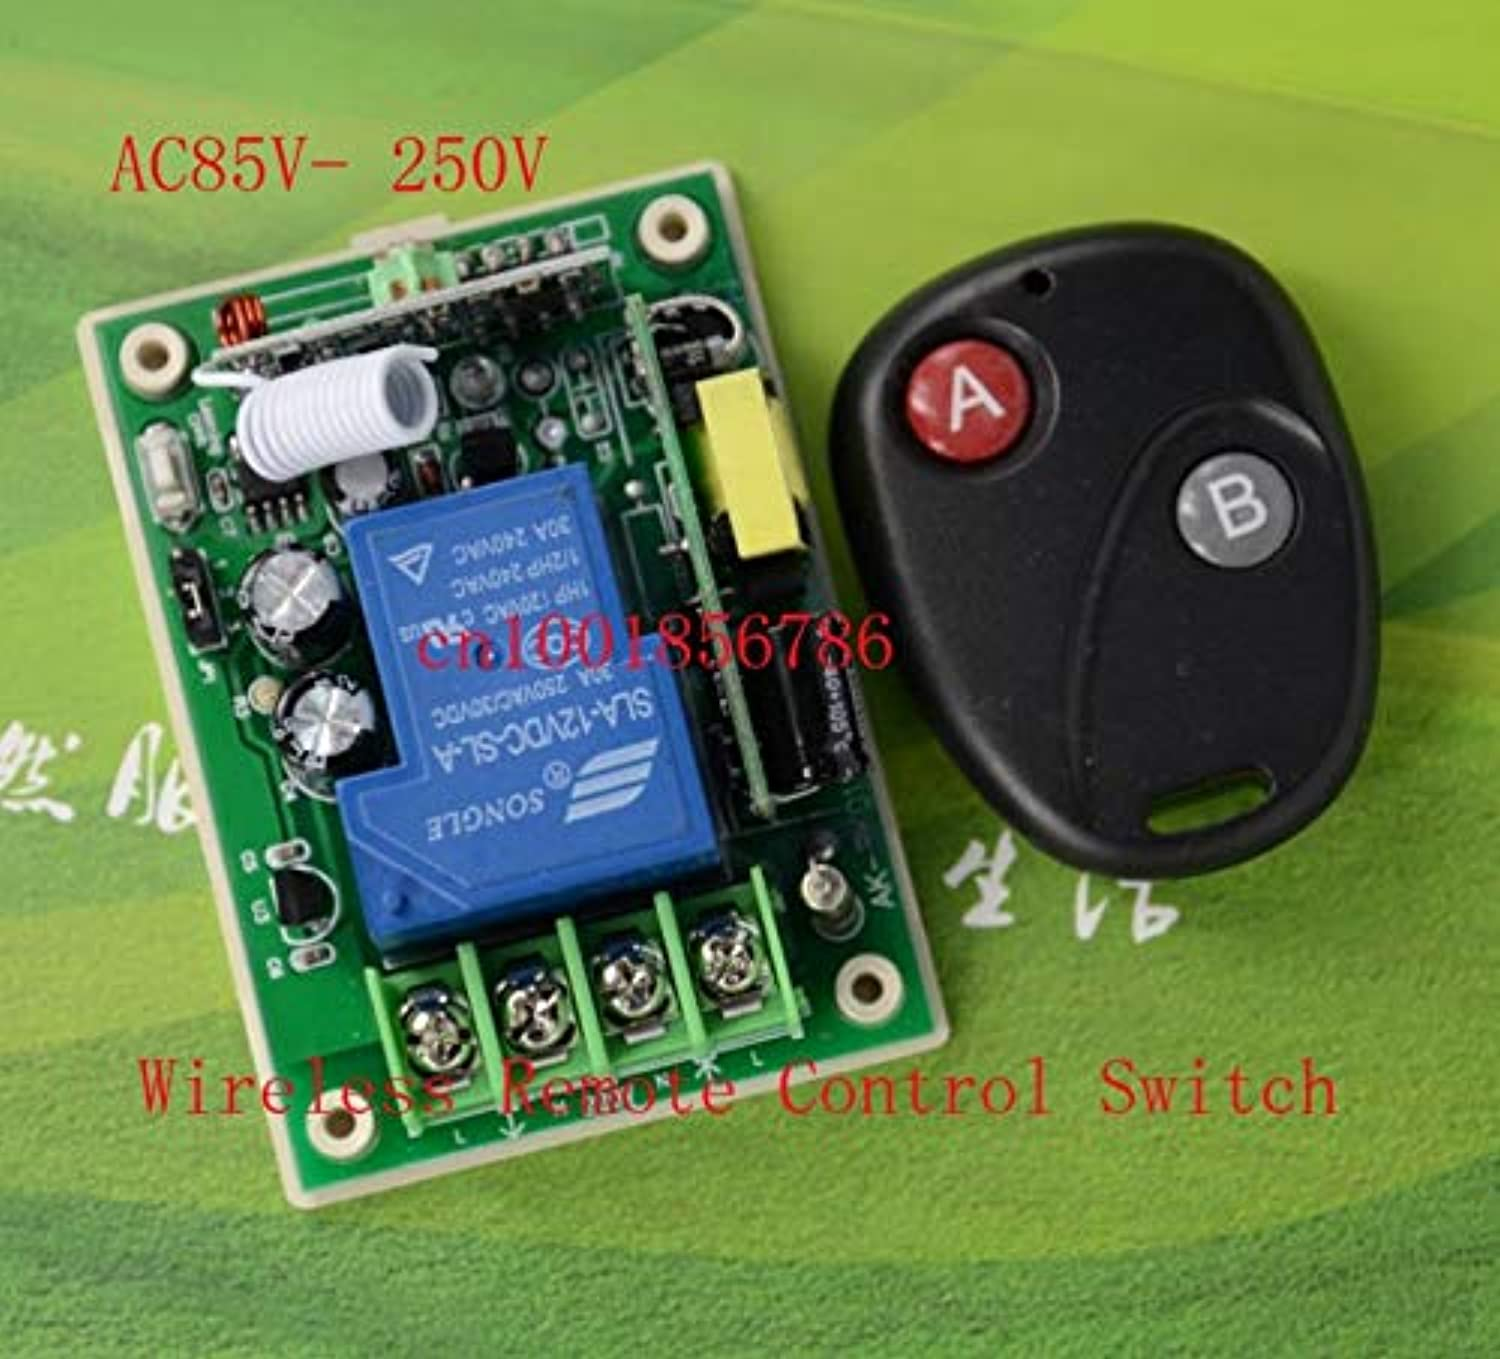 RF Wireless Remote Control Switch High Power 85V 250V 315 433 30A 3000W and 1000M Remote System Working Out with Latched